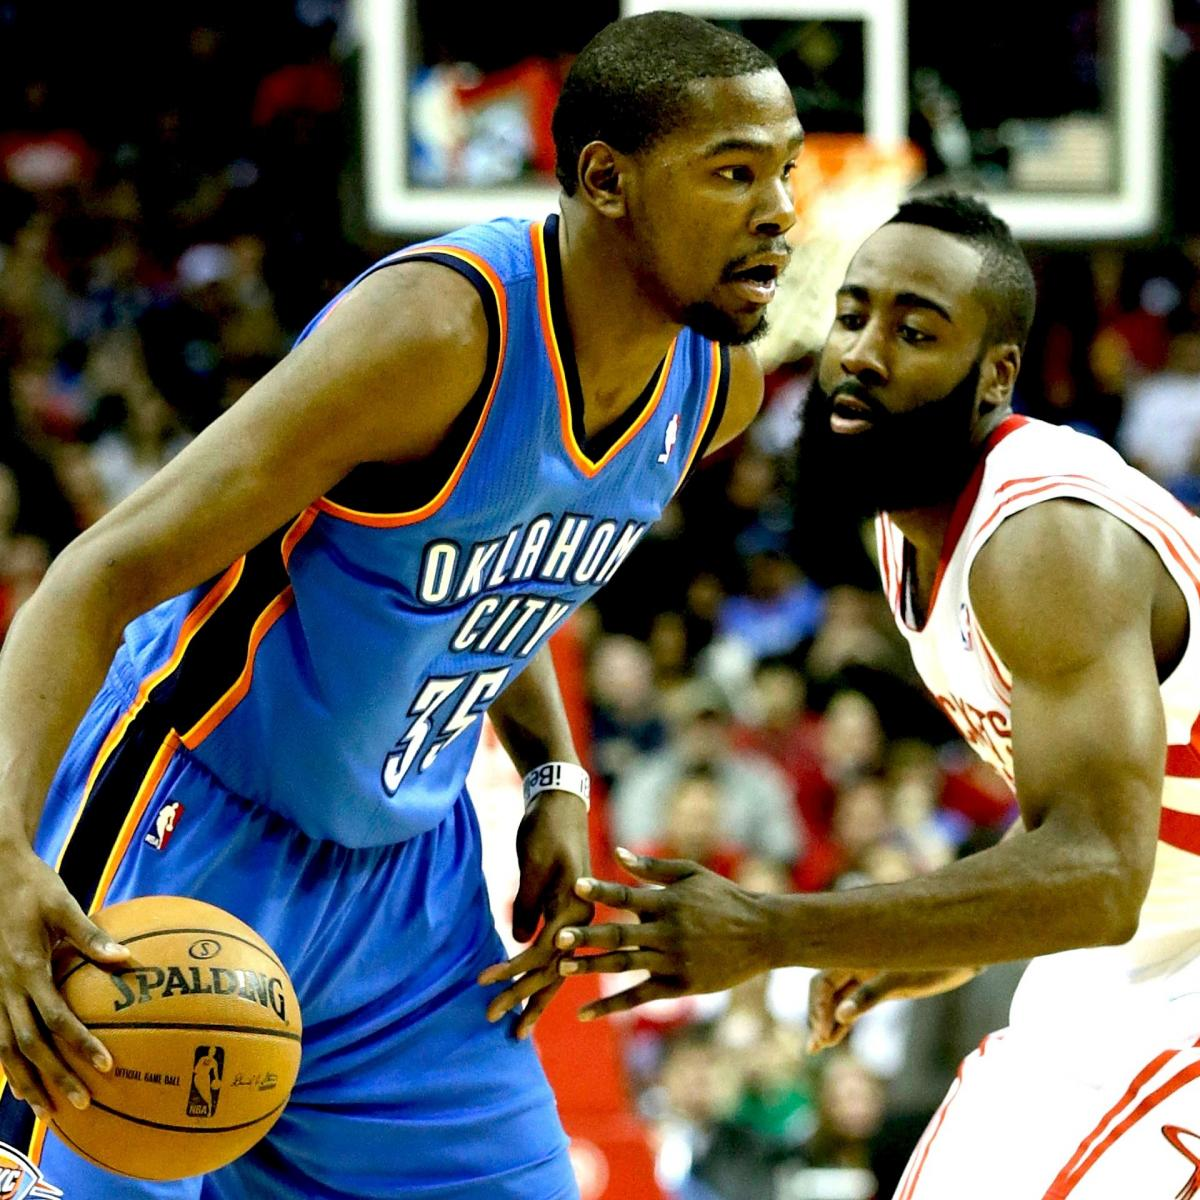 Houston Rockets Vs Okc: Oklahoma City Thunder Vs. Houston Rockets: Postgame Grades